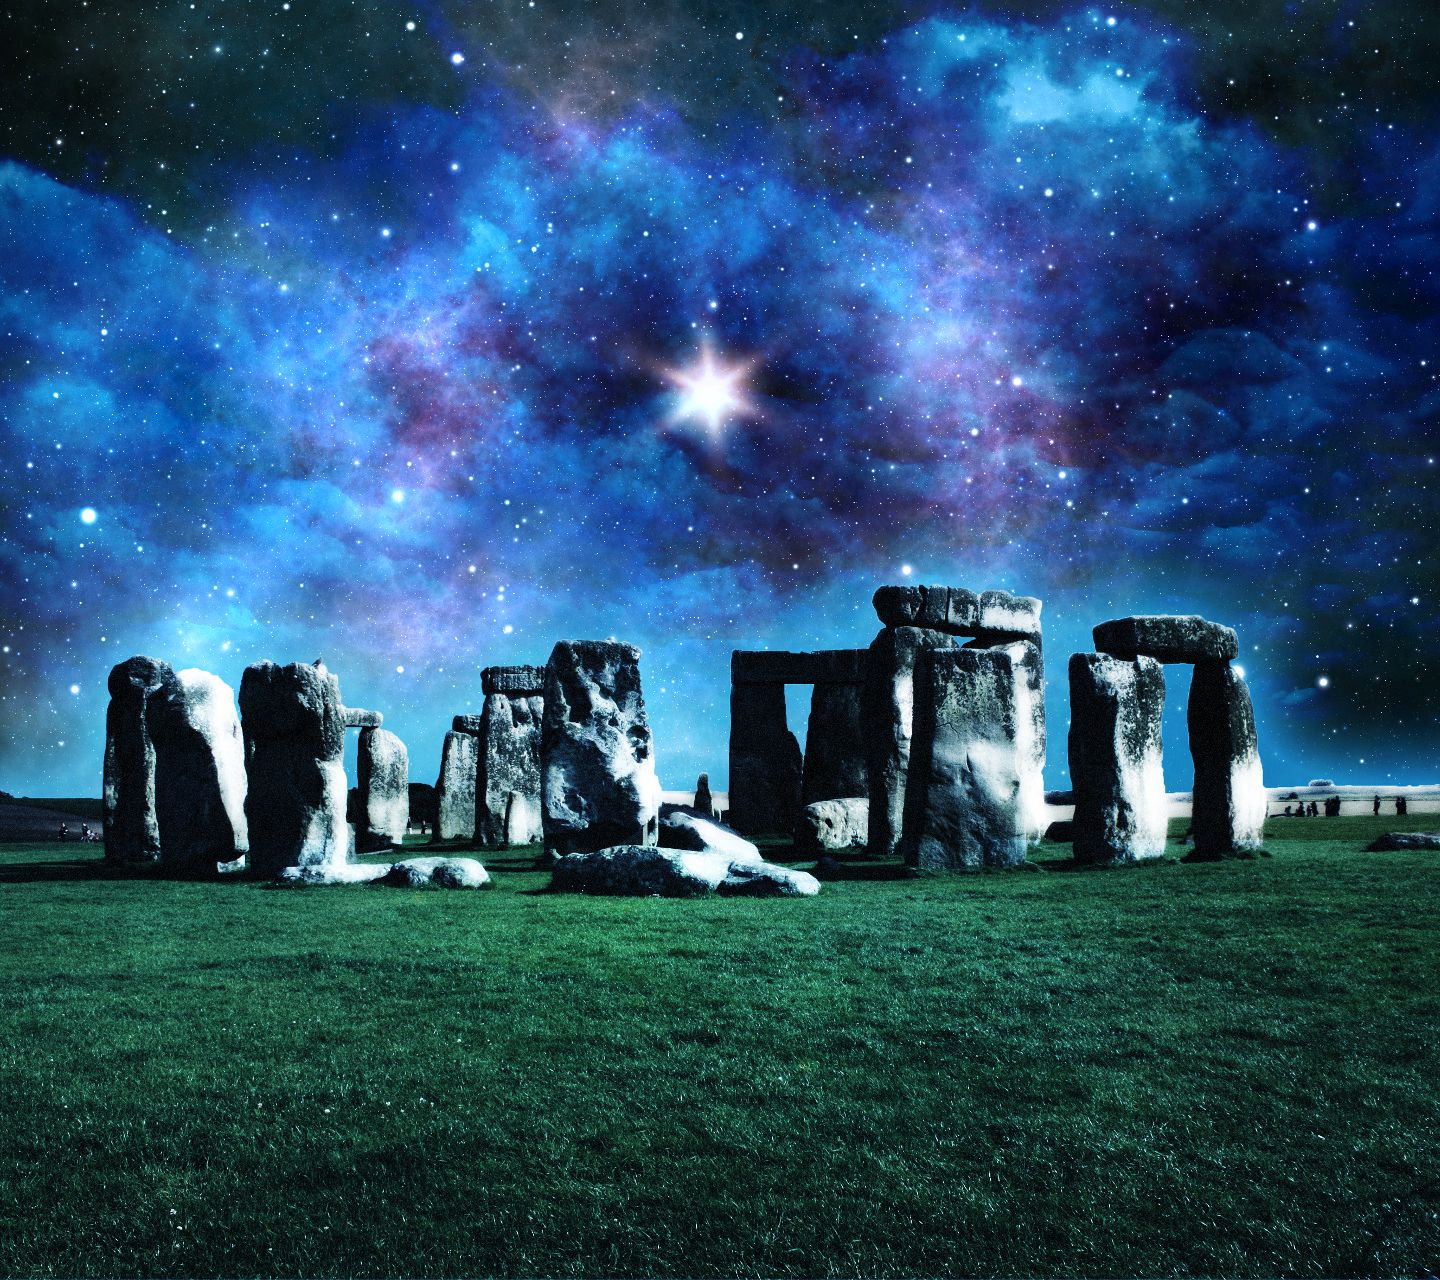 Download · Stonehenge Hd,1440x1280,1280x1440,free,hot,mobile phone wallpapers,www Download